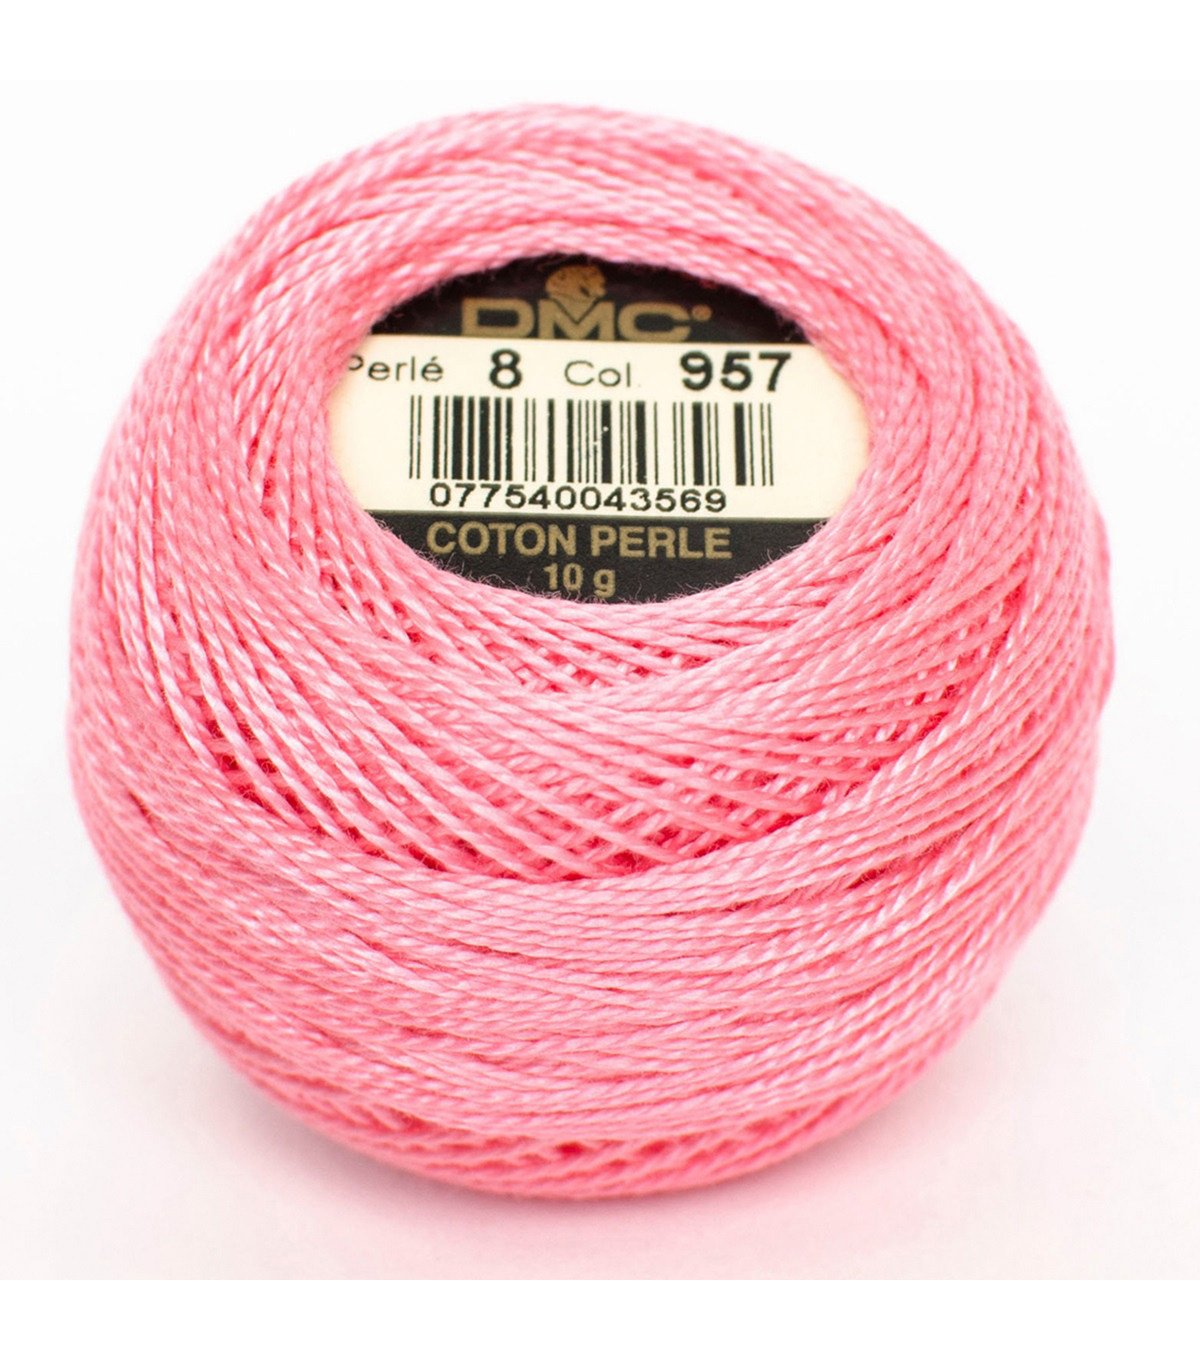 DMC Pearl Cotton Balls Thread 87 Yds Size 8, Pale Geranium